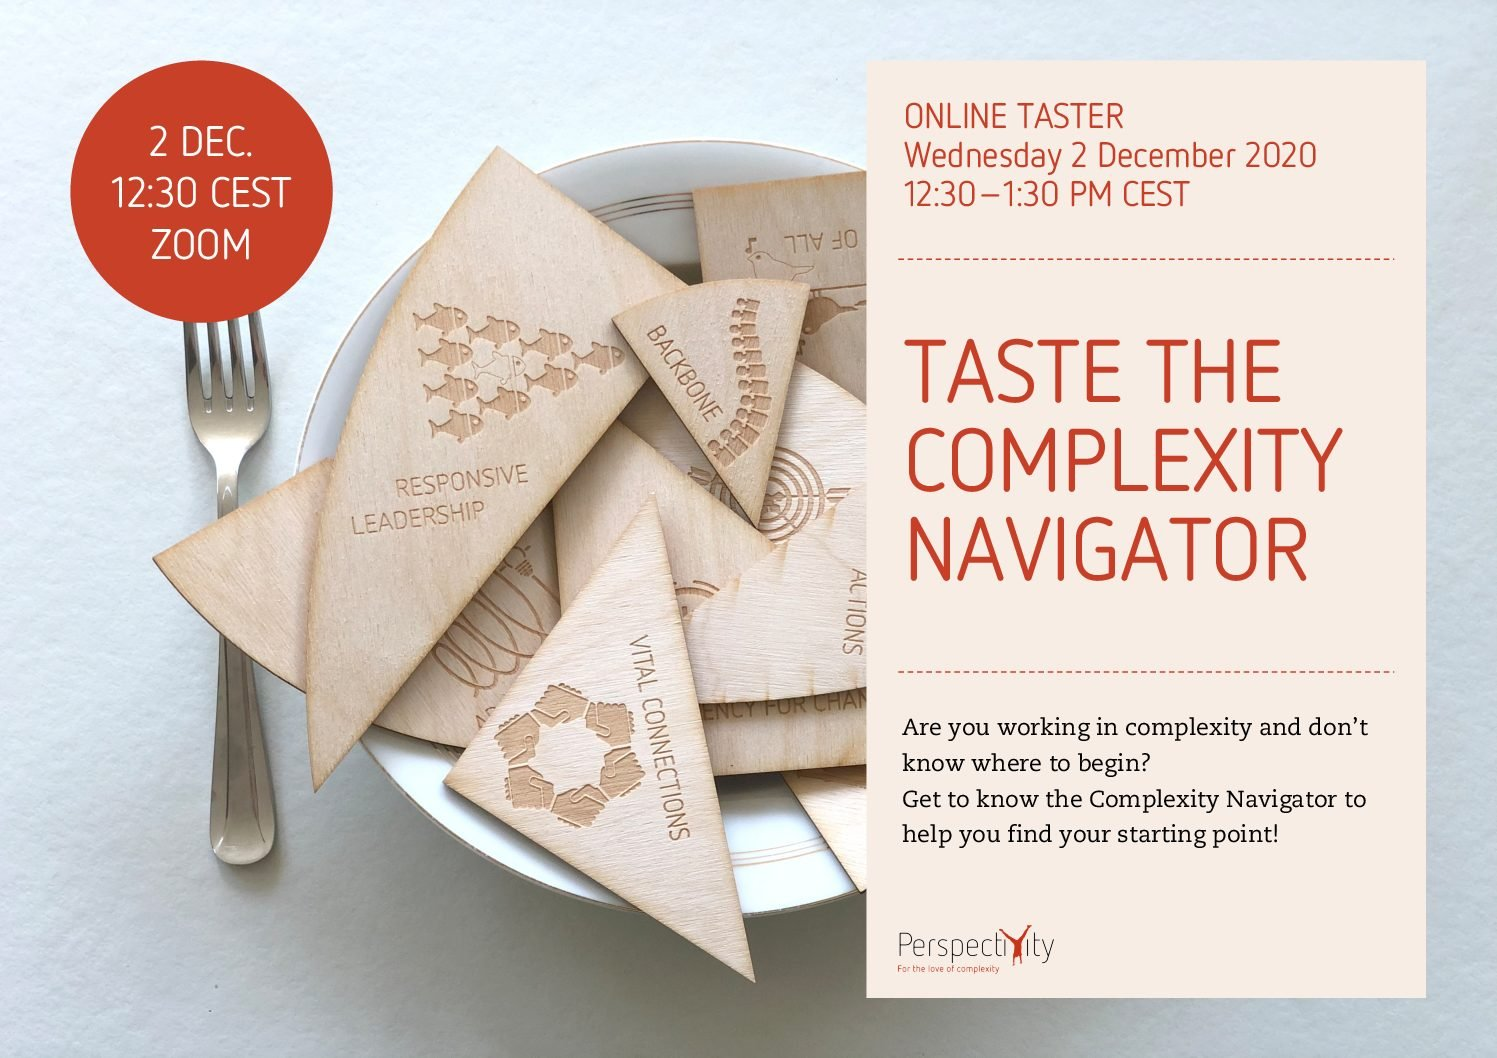 Taste the Complexity Navigator